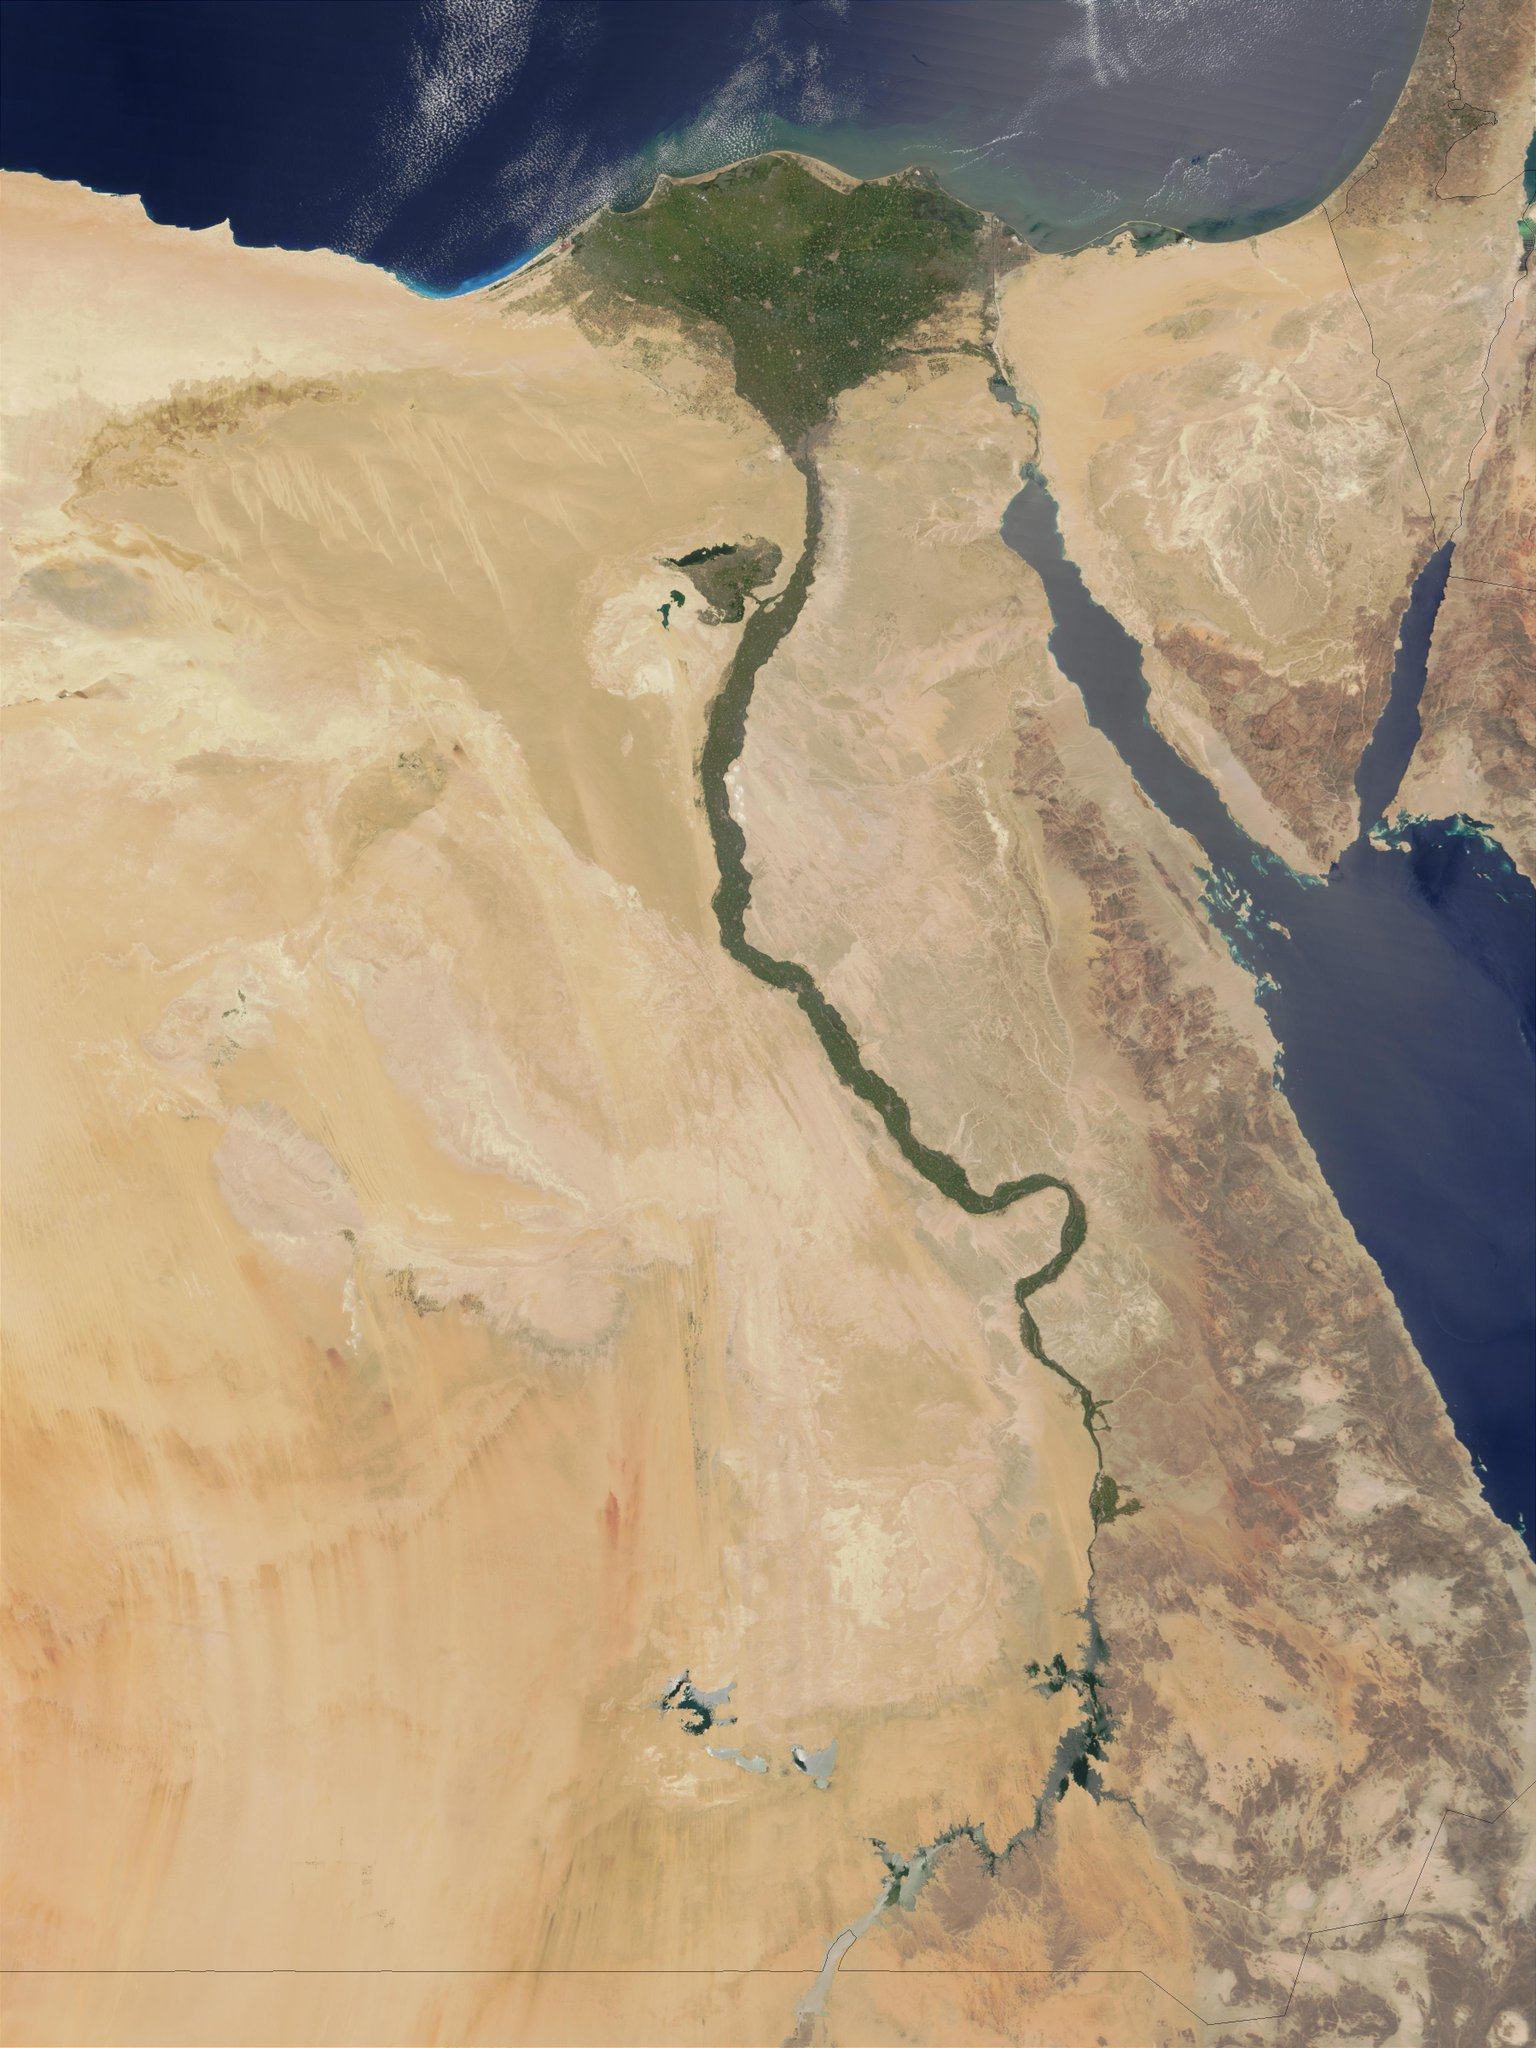 a look at the villages of ancient egypt along the nile That is one reason we look for causes and effects in history the civilization of ancient egypt developed along a 750-mile stretch of the nile ancient egypt.